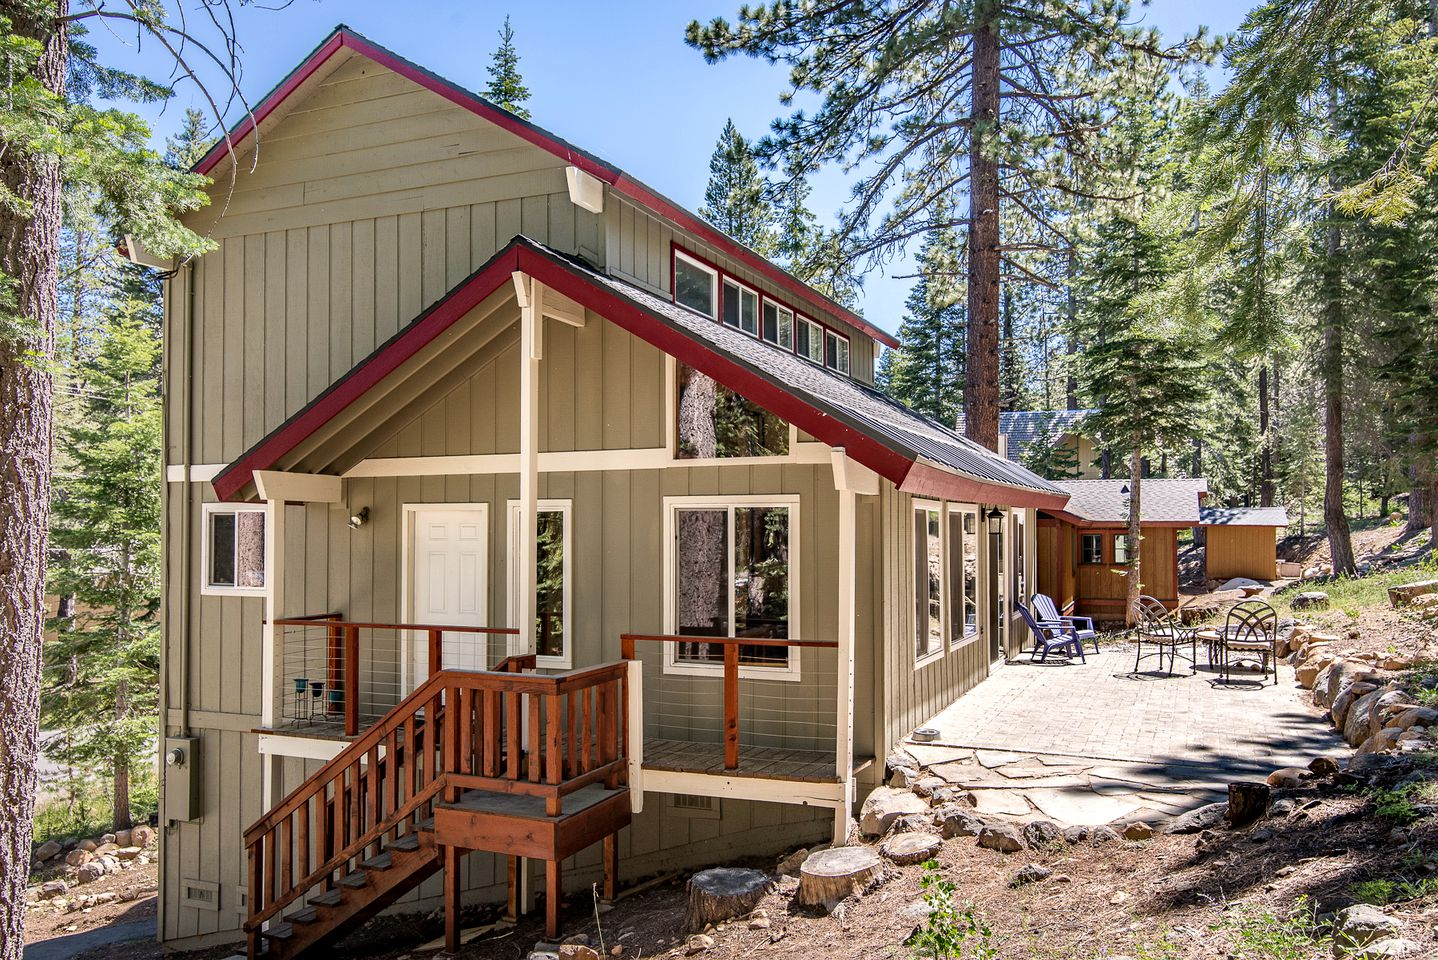 Vacation Rentals (Truckee, California, United States)